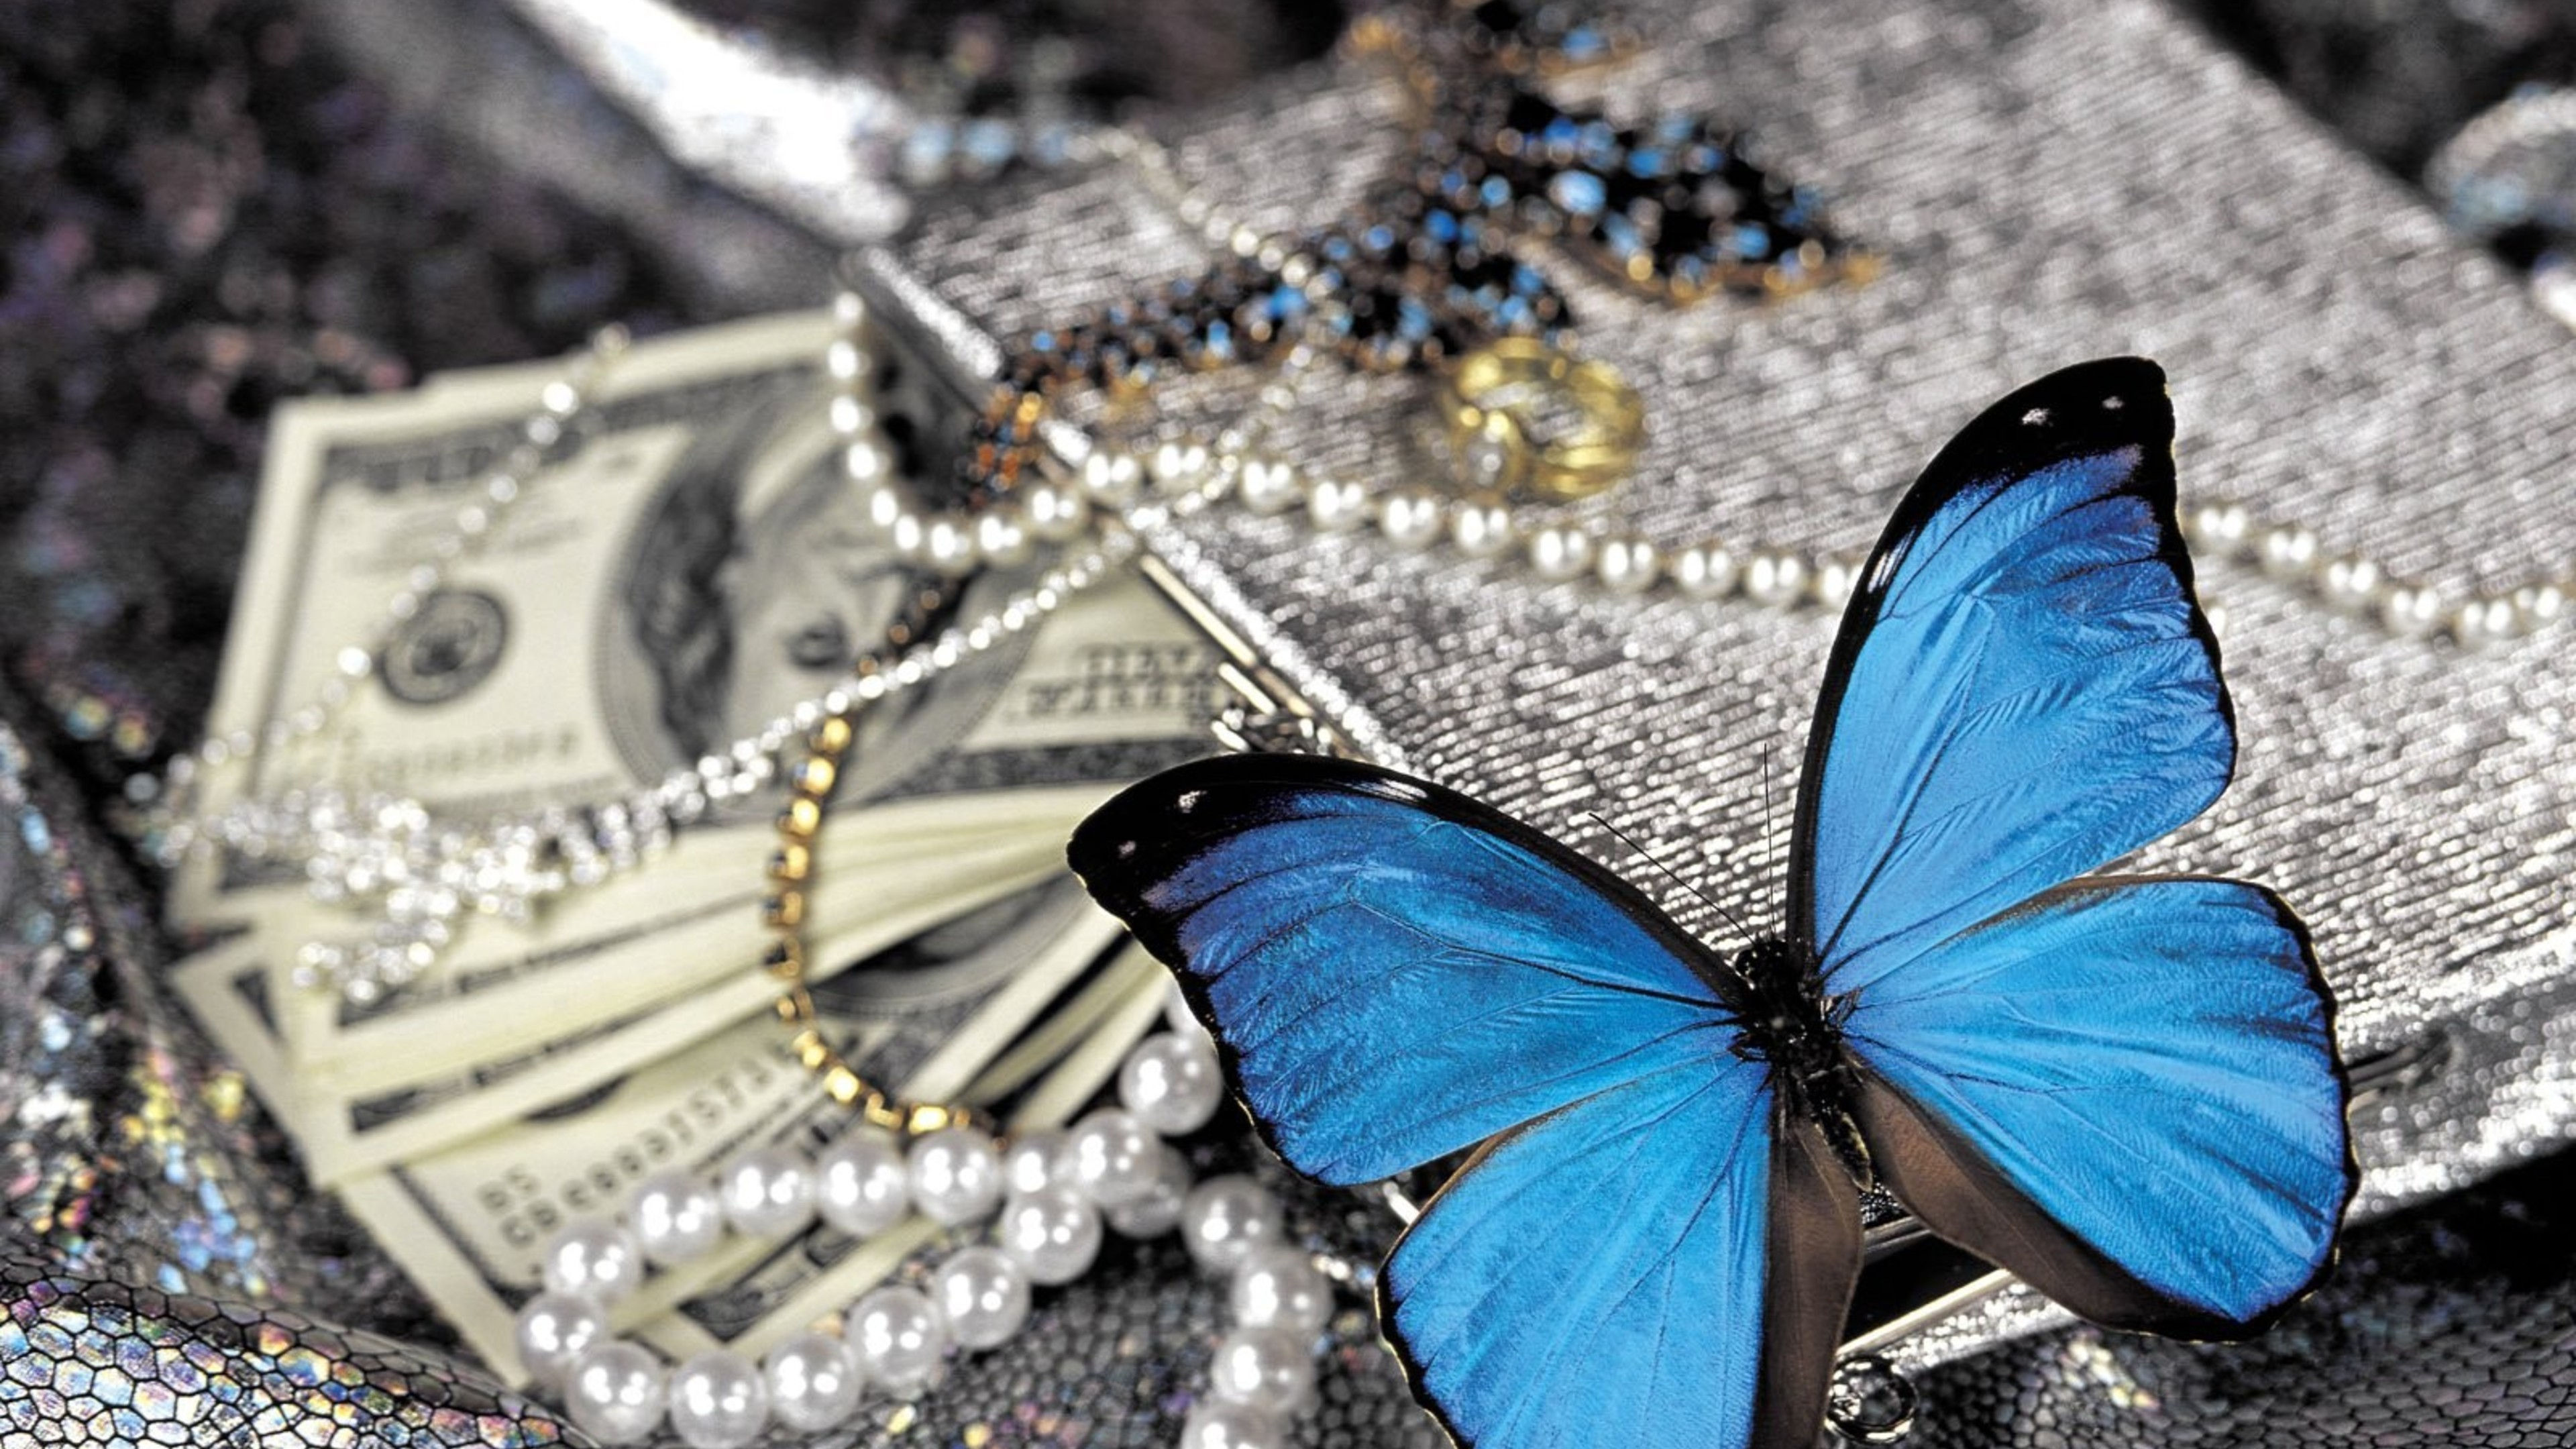 2048x1152 Wallpaper Cute Blue Butterfly On Pearls Hd Birds 4k Wallpapers Images